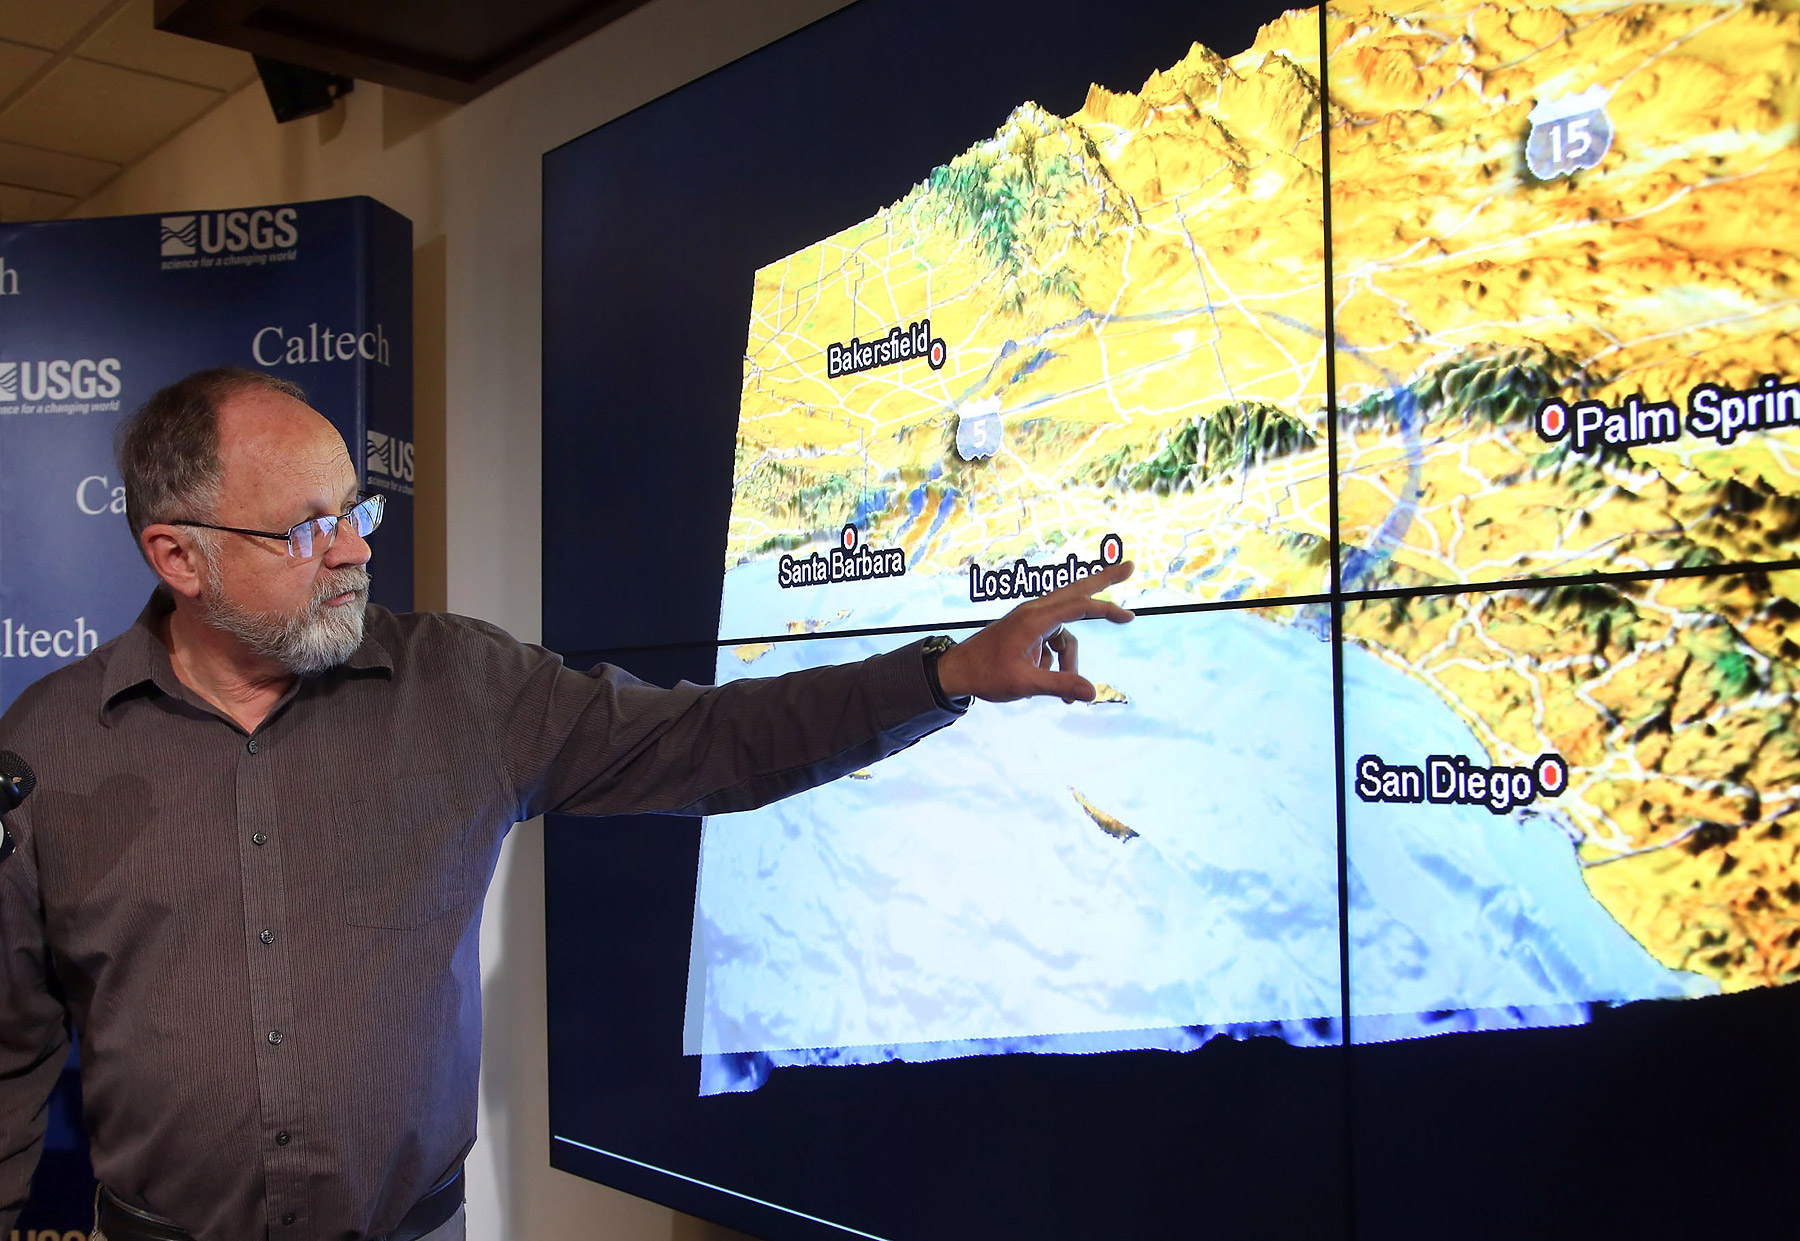 Egill Hauksson, a Caltech seismologist, talks about an early morning earthquake during a news conference at Caltech in Pasadena, Calif, on Monday, March 17, 2014.